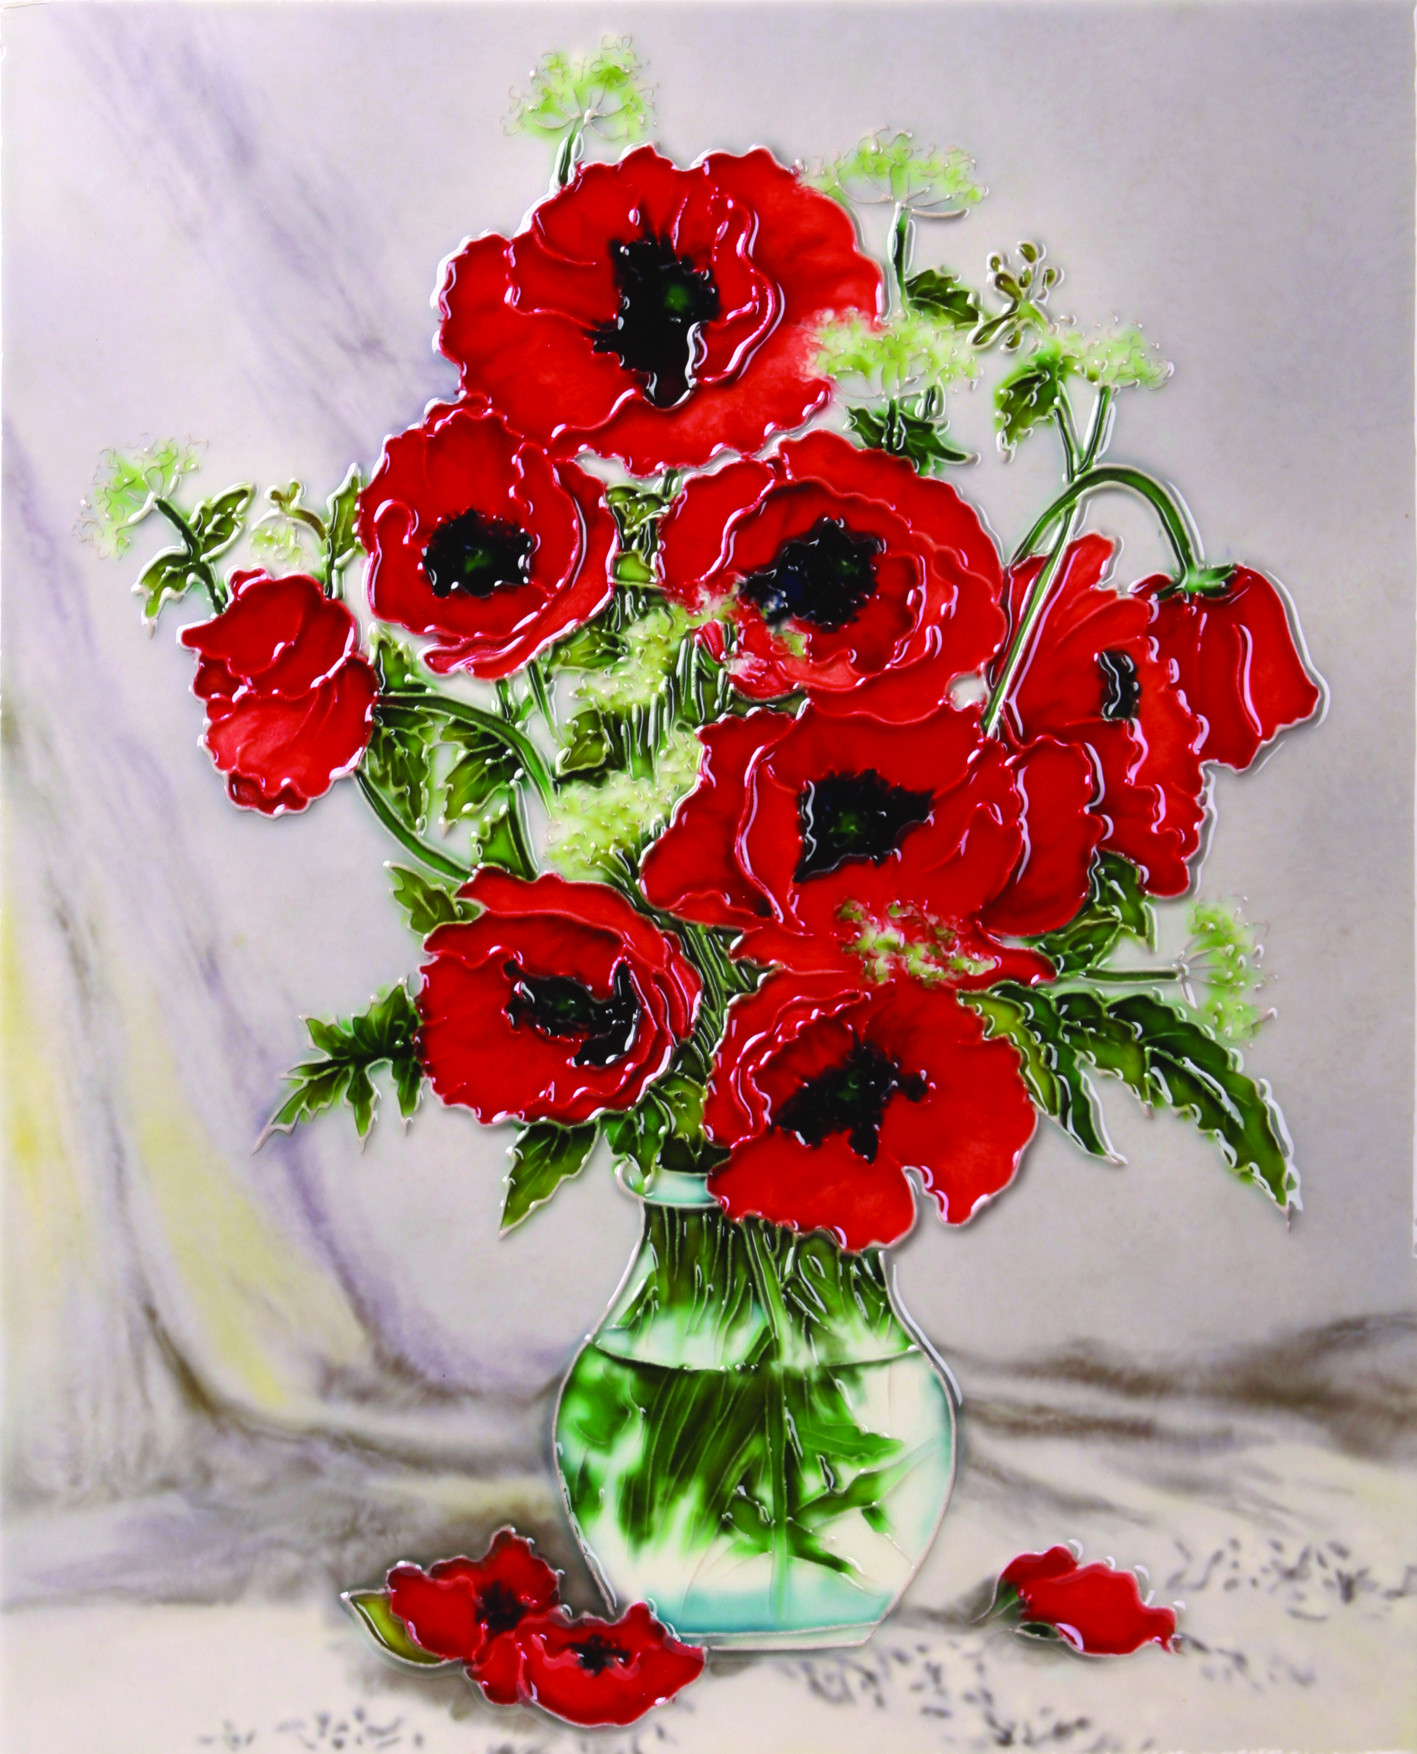 Still Life Poppies 11×14 (520535)